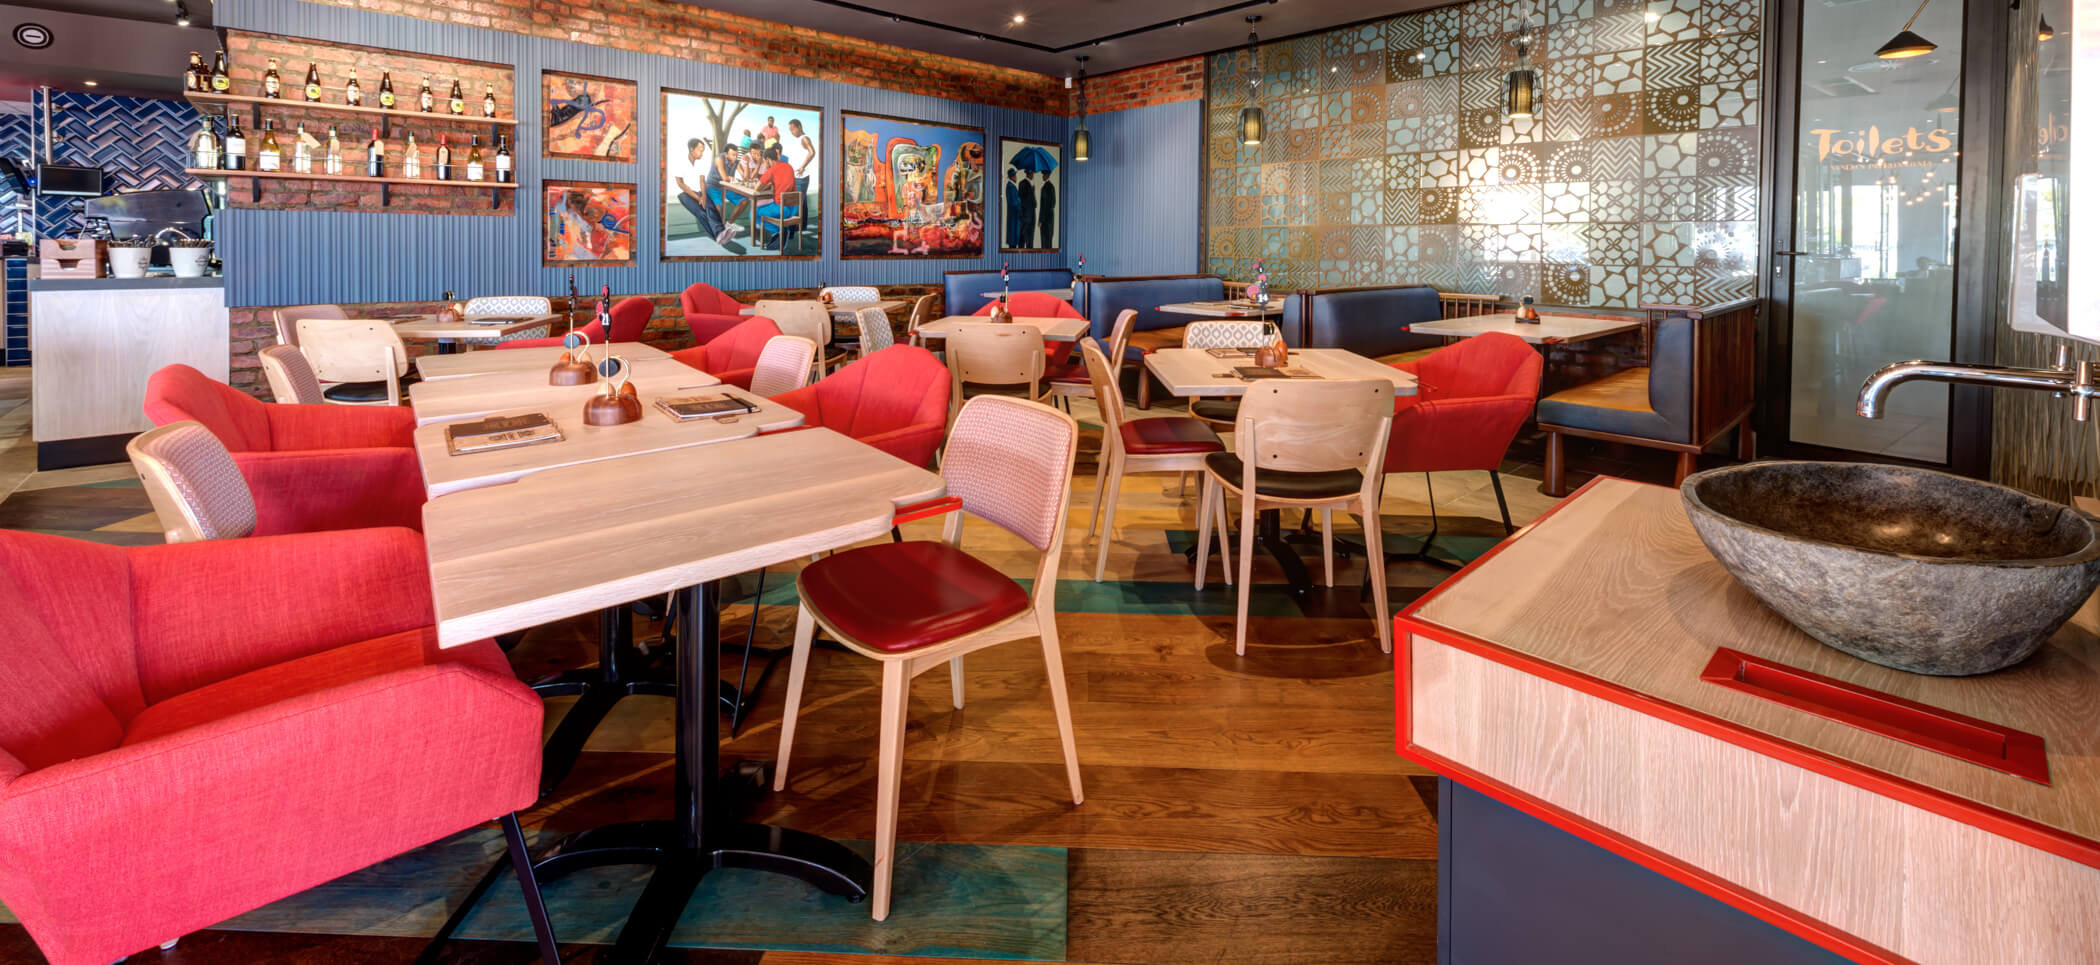 Rubio Monocoat used in a restaurant for wood surfaces.